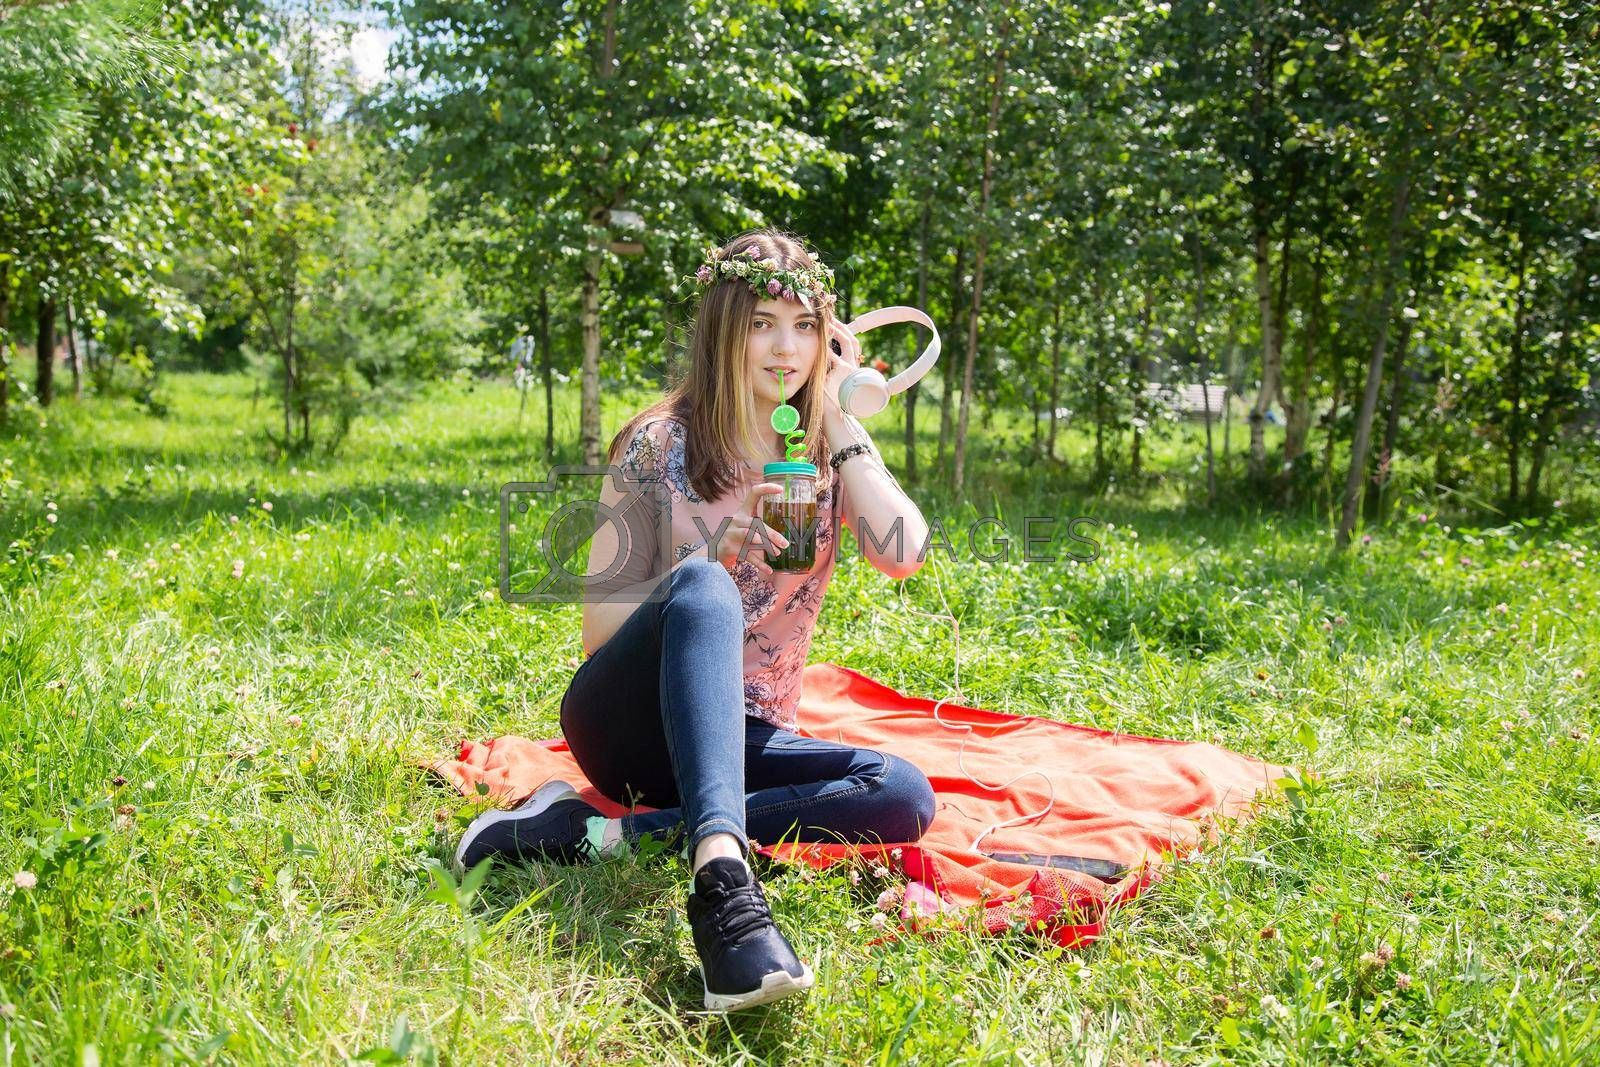 A young girl listens to music while sitting on the lawn in the park on a summer  by galinasharapova